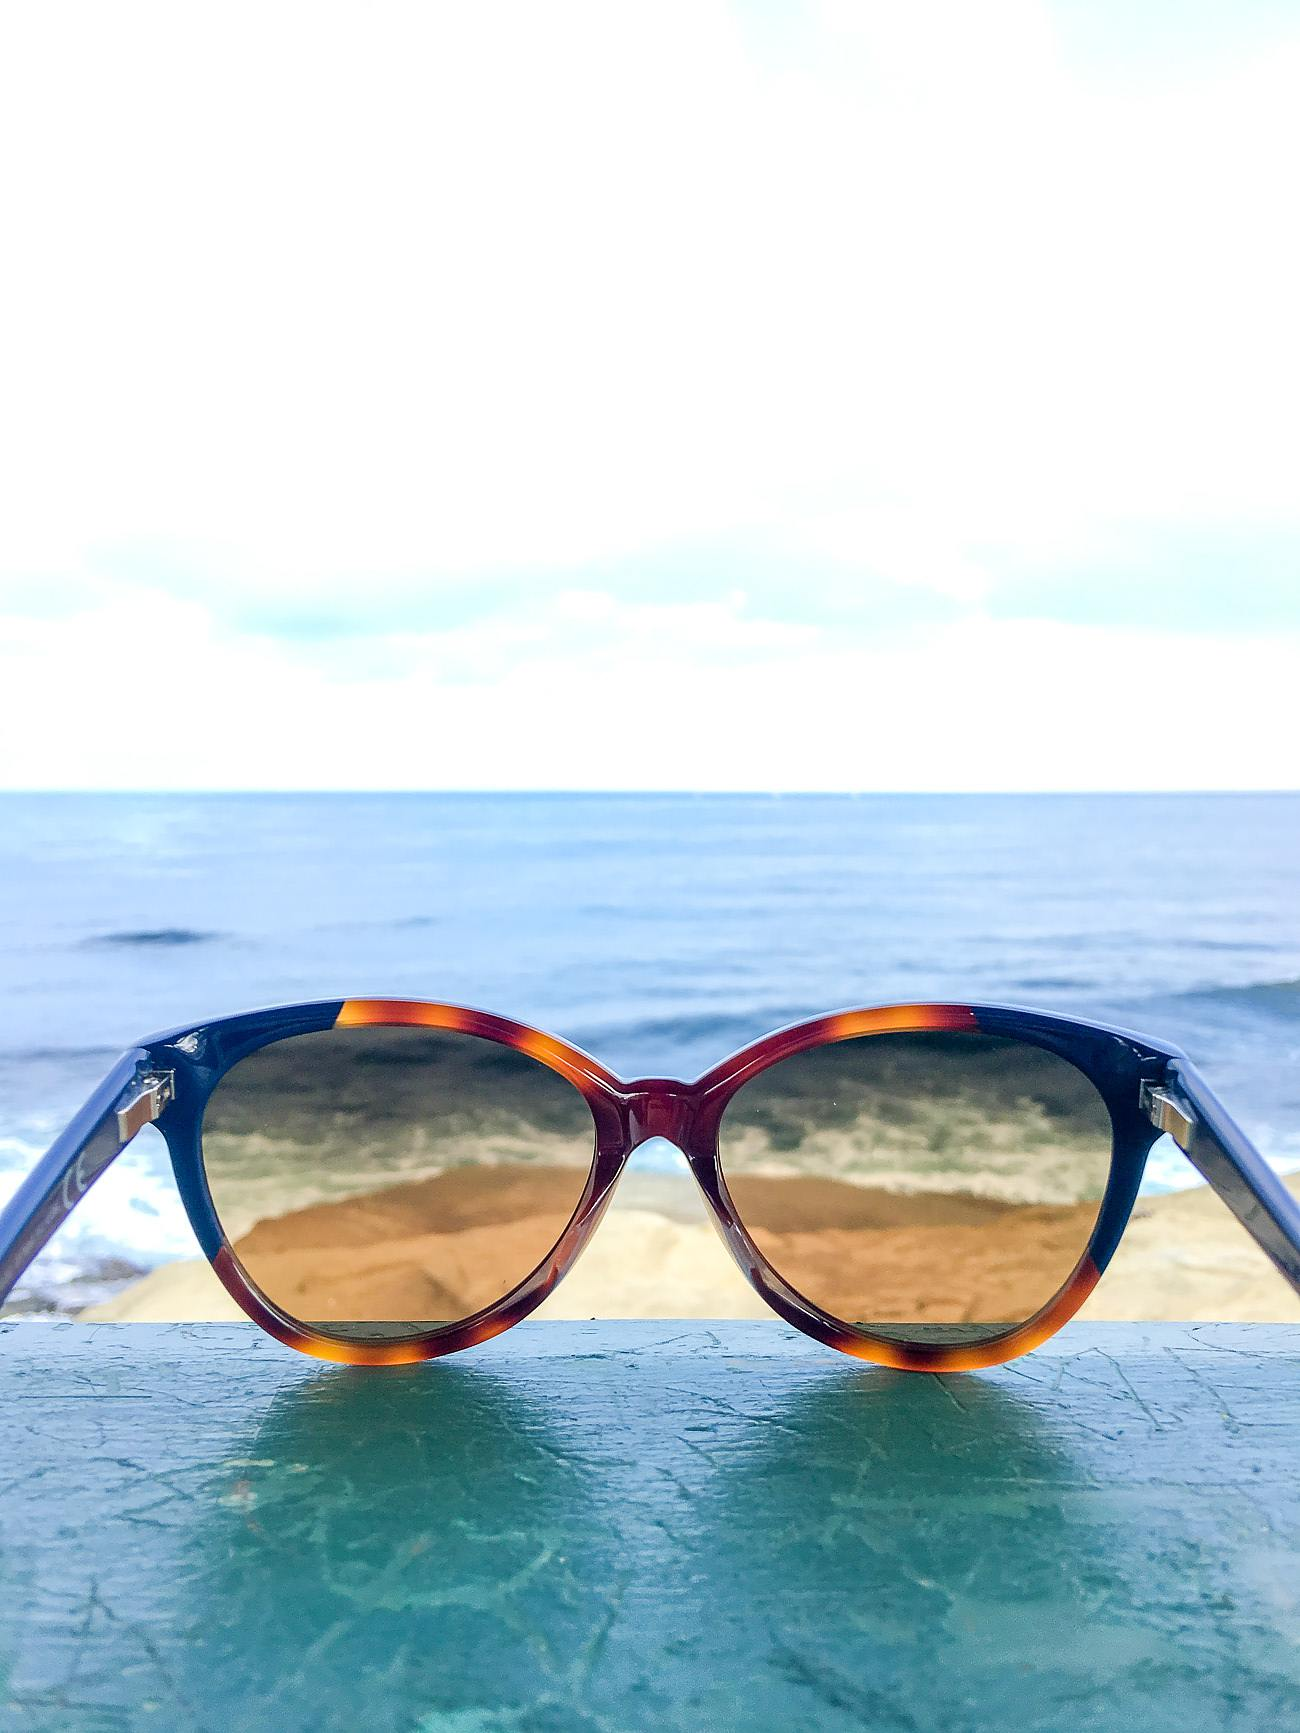 Maui Jim Sunshine sunglasses in tortoise and navy blue